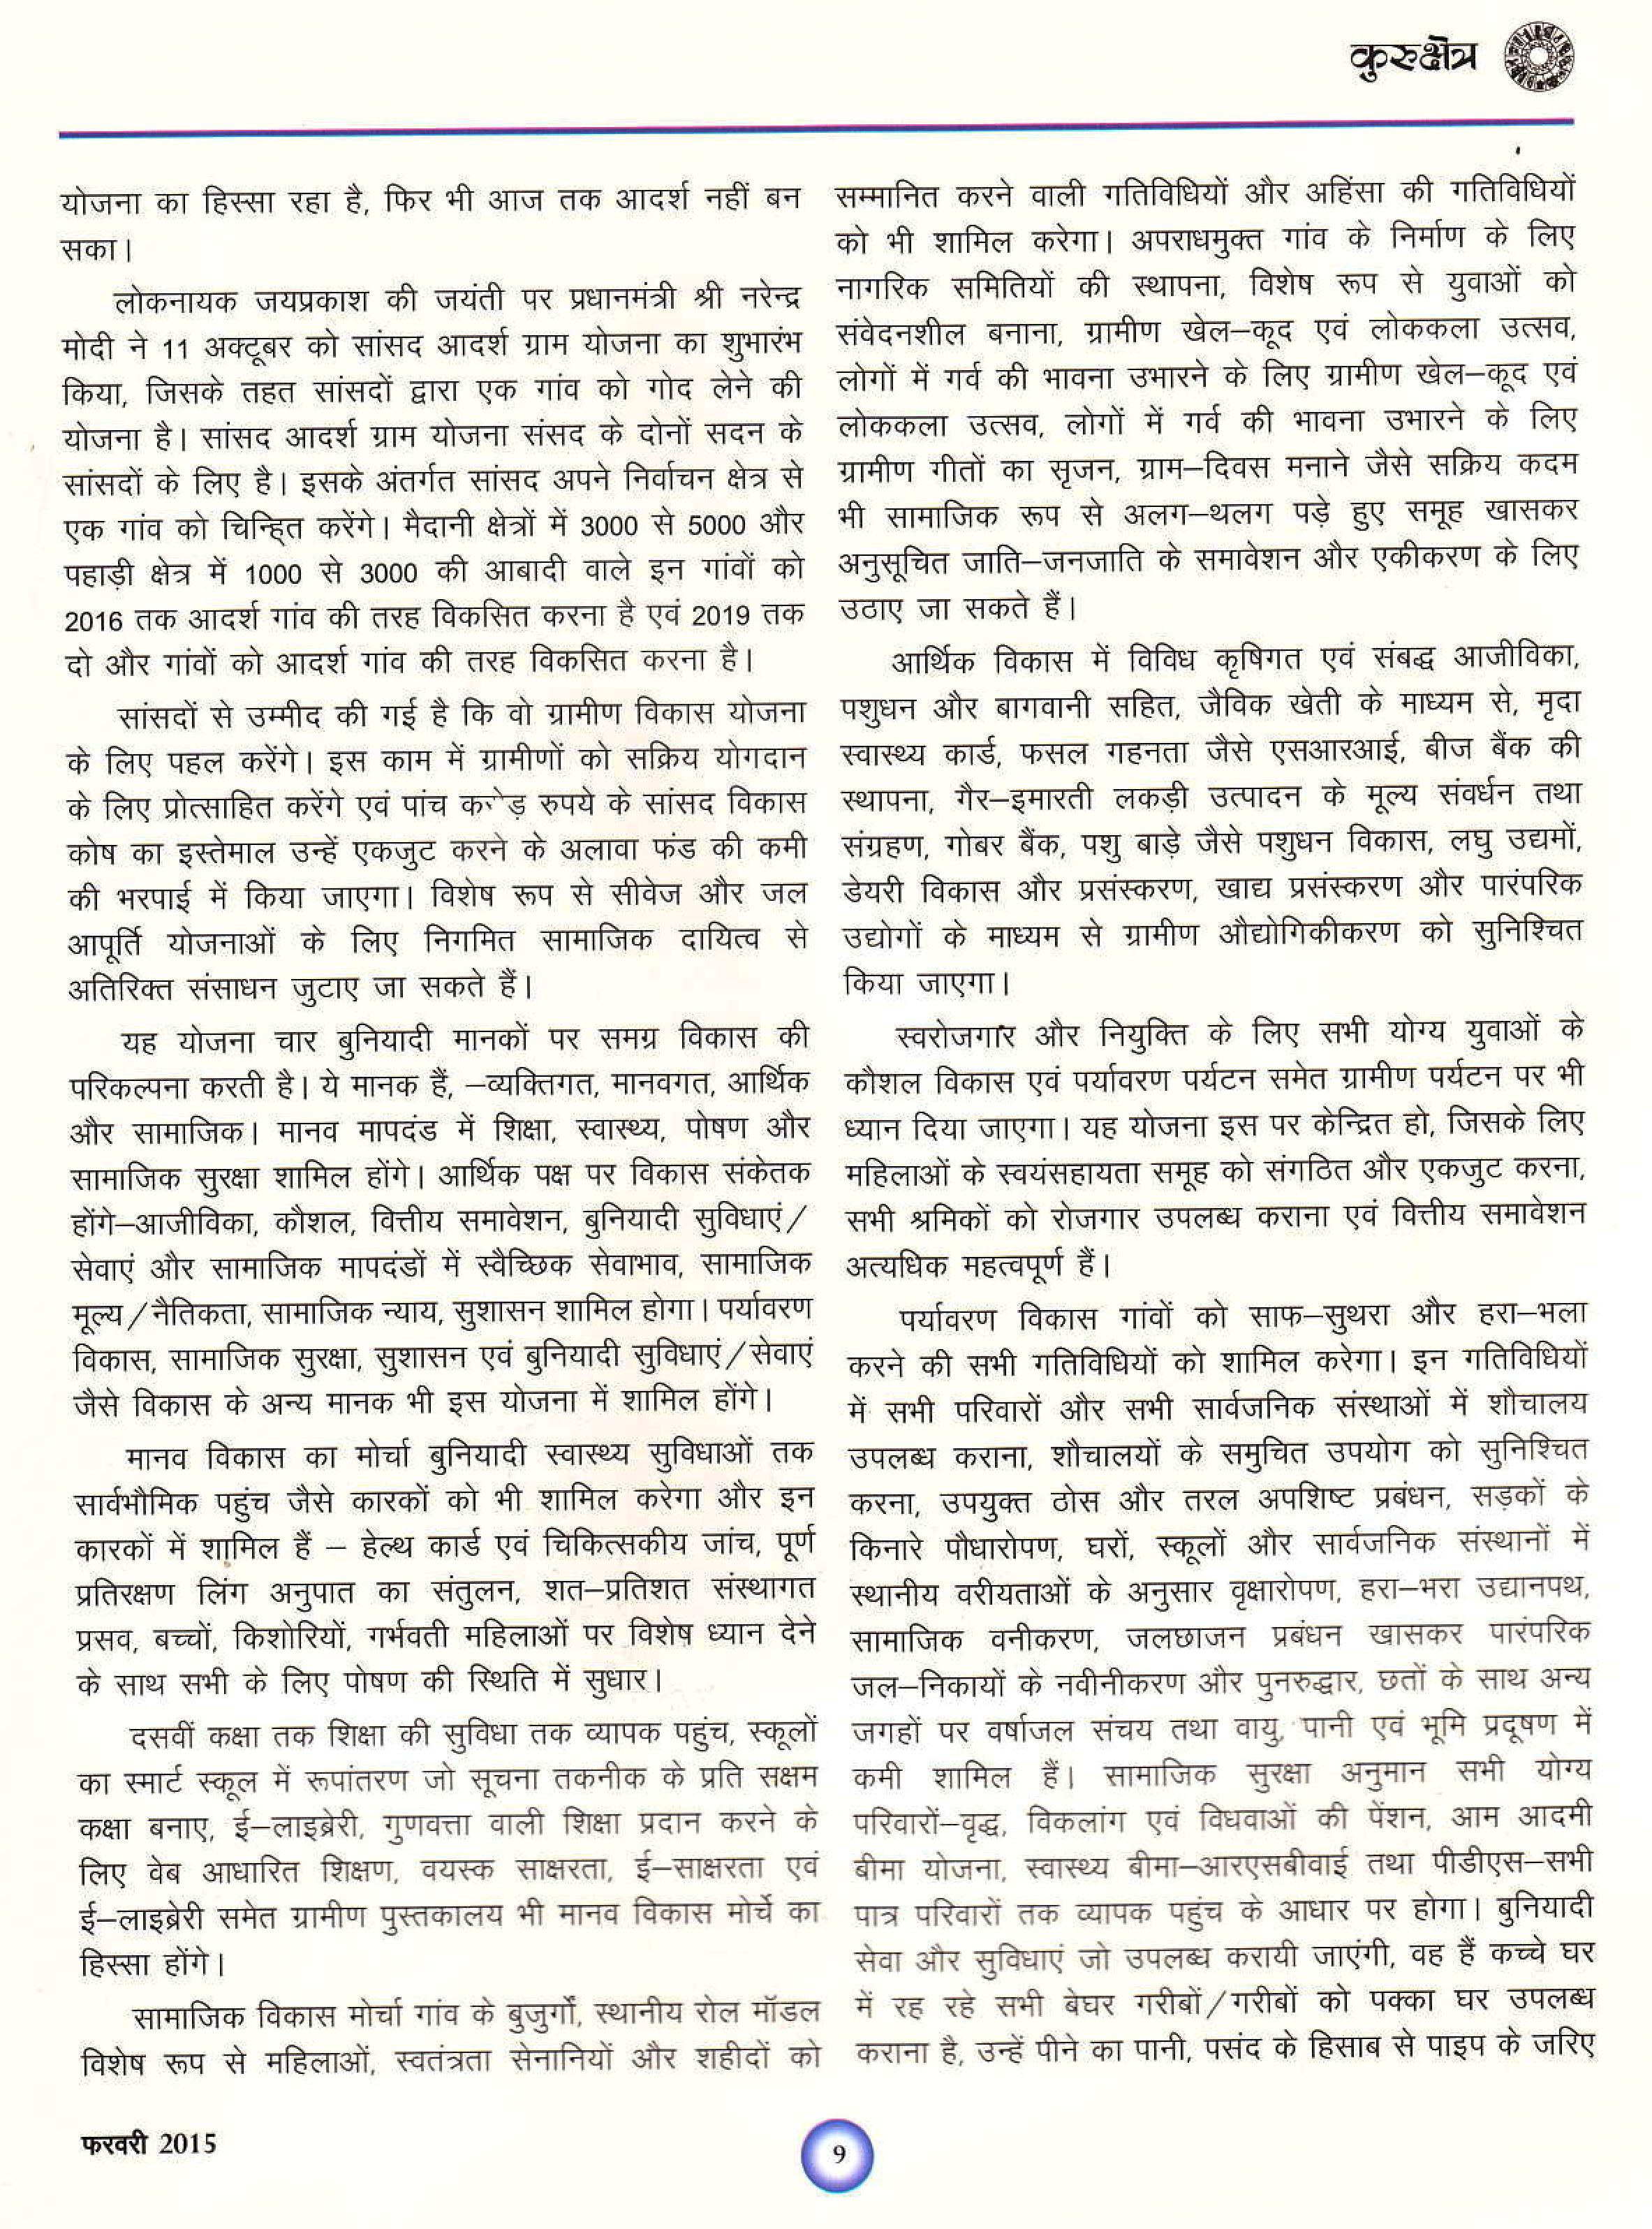 IMG_0012-page-002